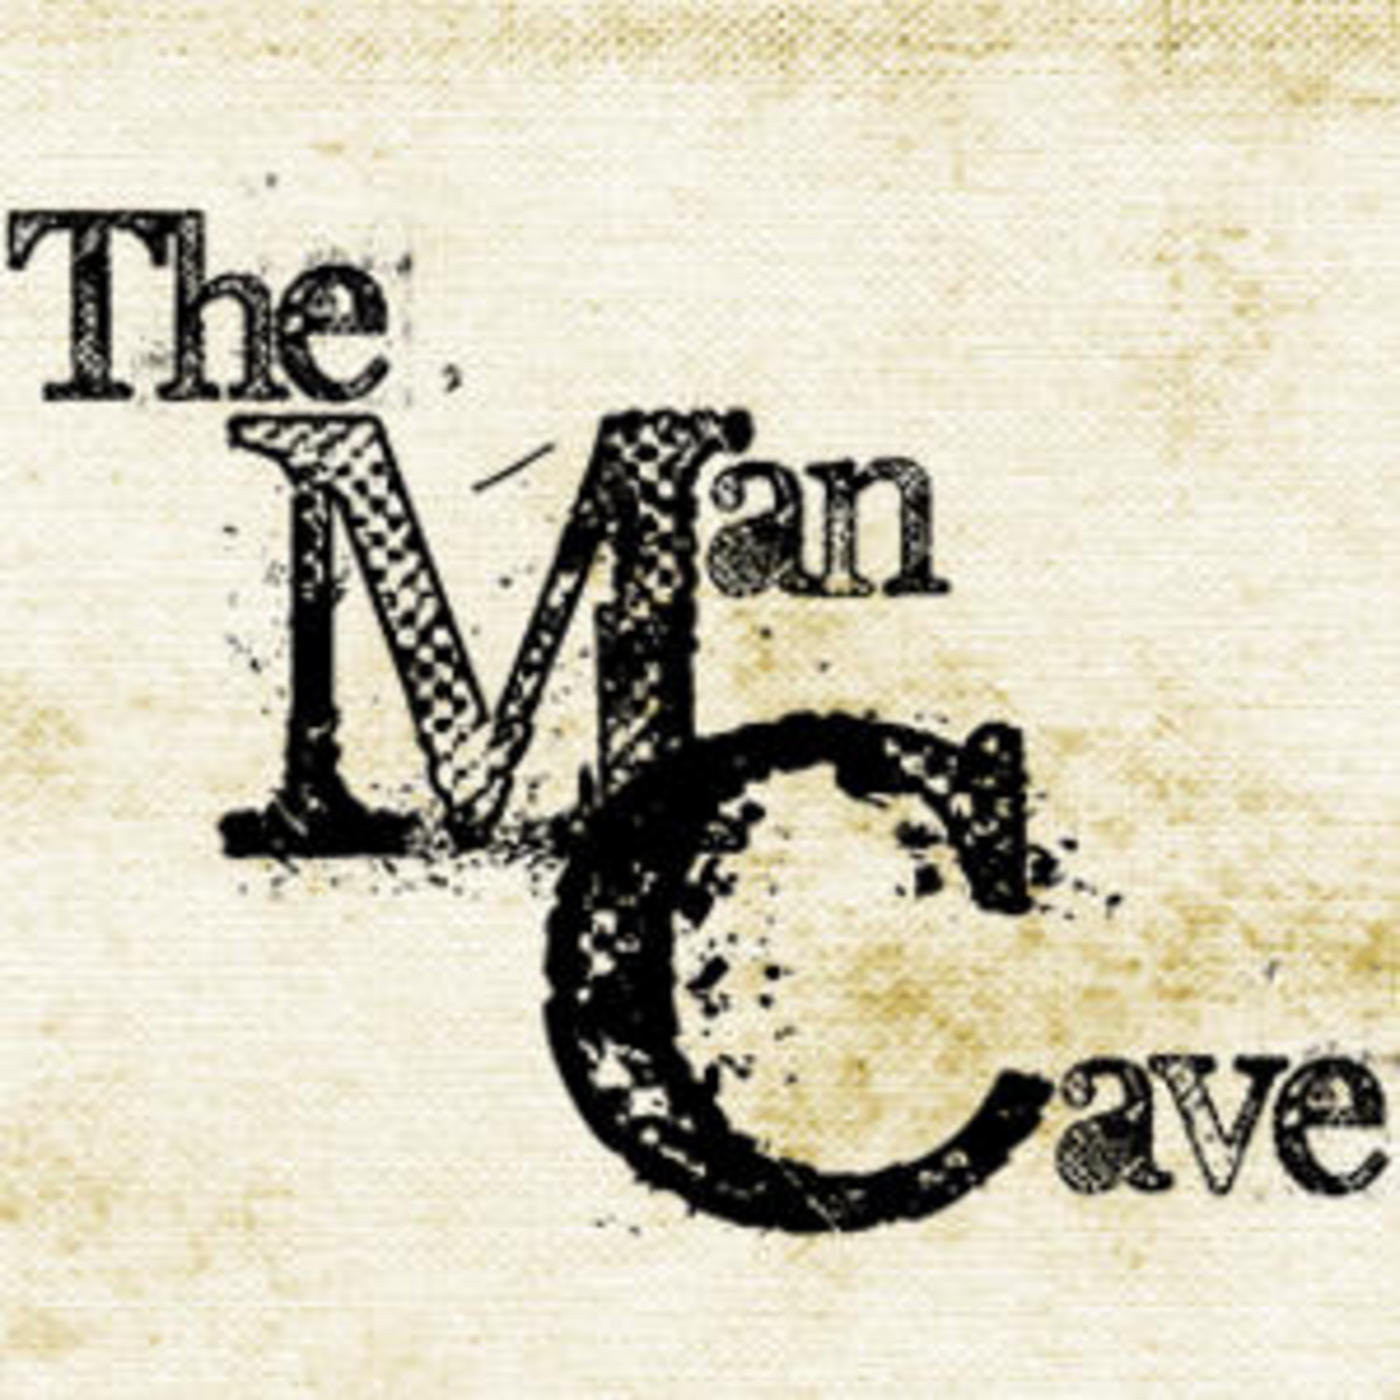 Man Cave Podcast : Interviews with kendall karson hope harper mandy muse en